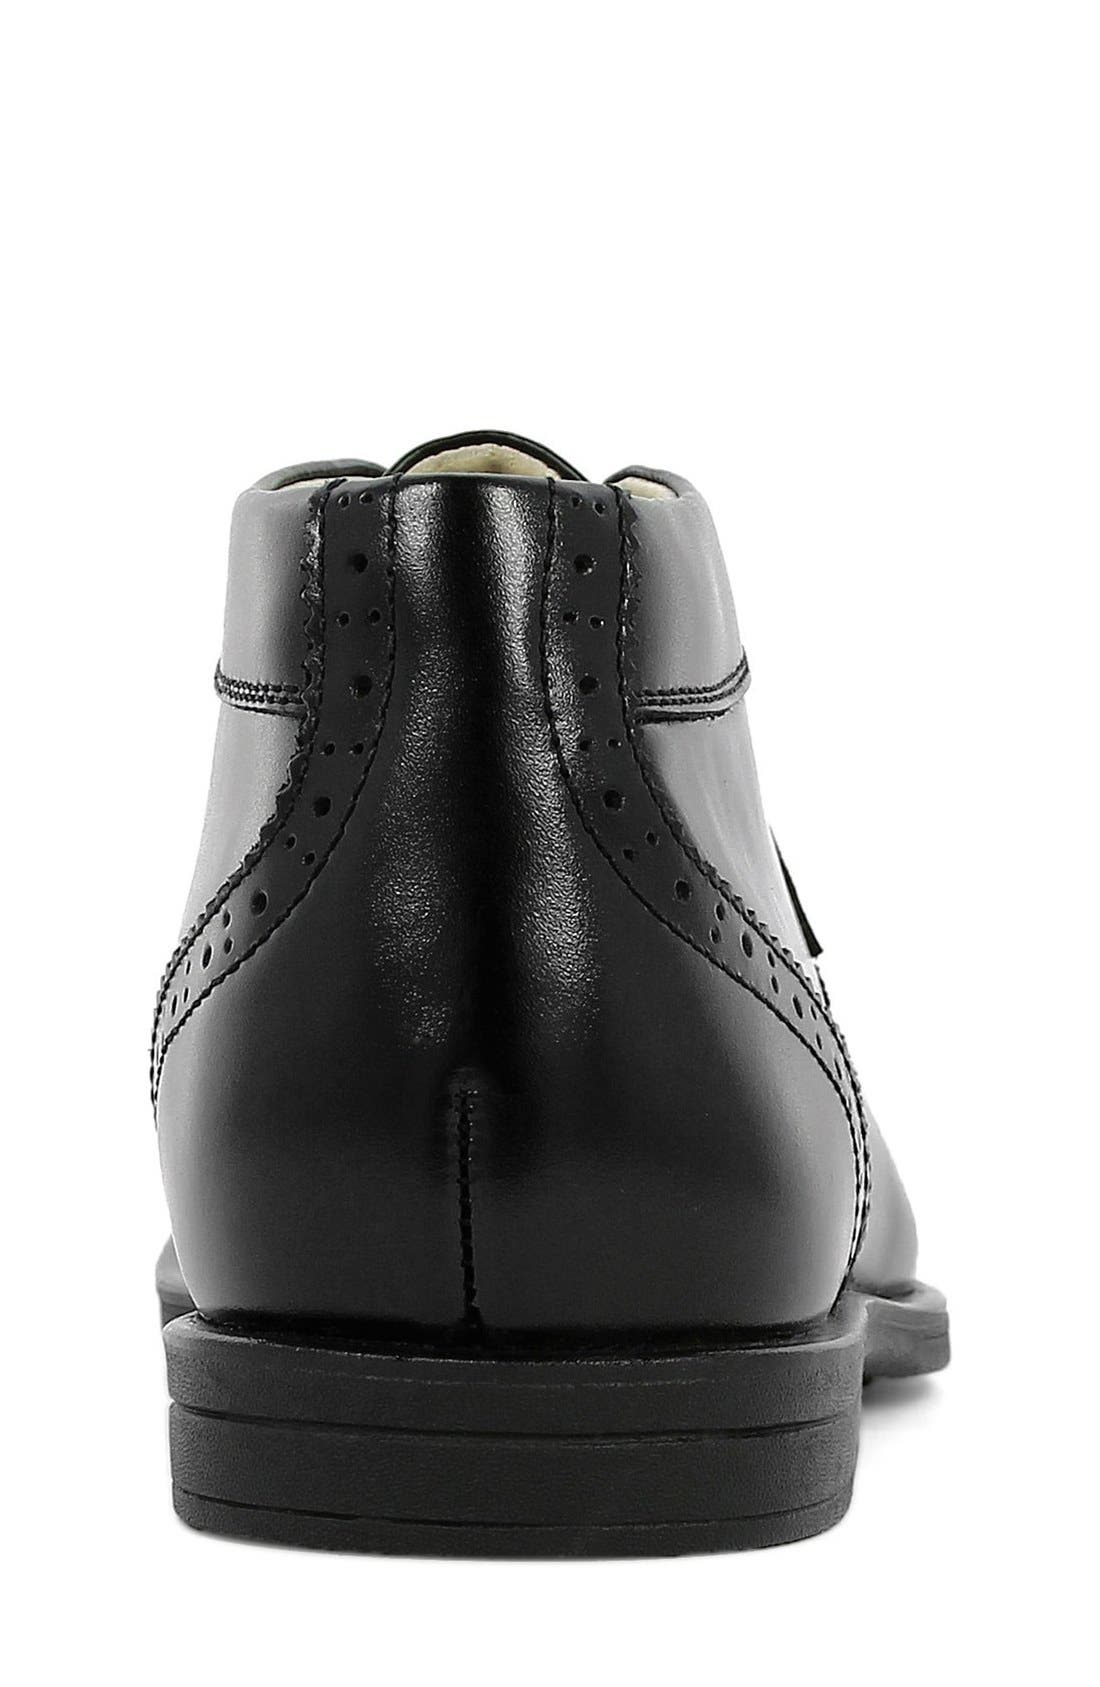 FLORSHEIM, 'Reveal' Chukka Boot, Alternate thumbnail 7, color, BLACK LEATHER